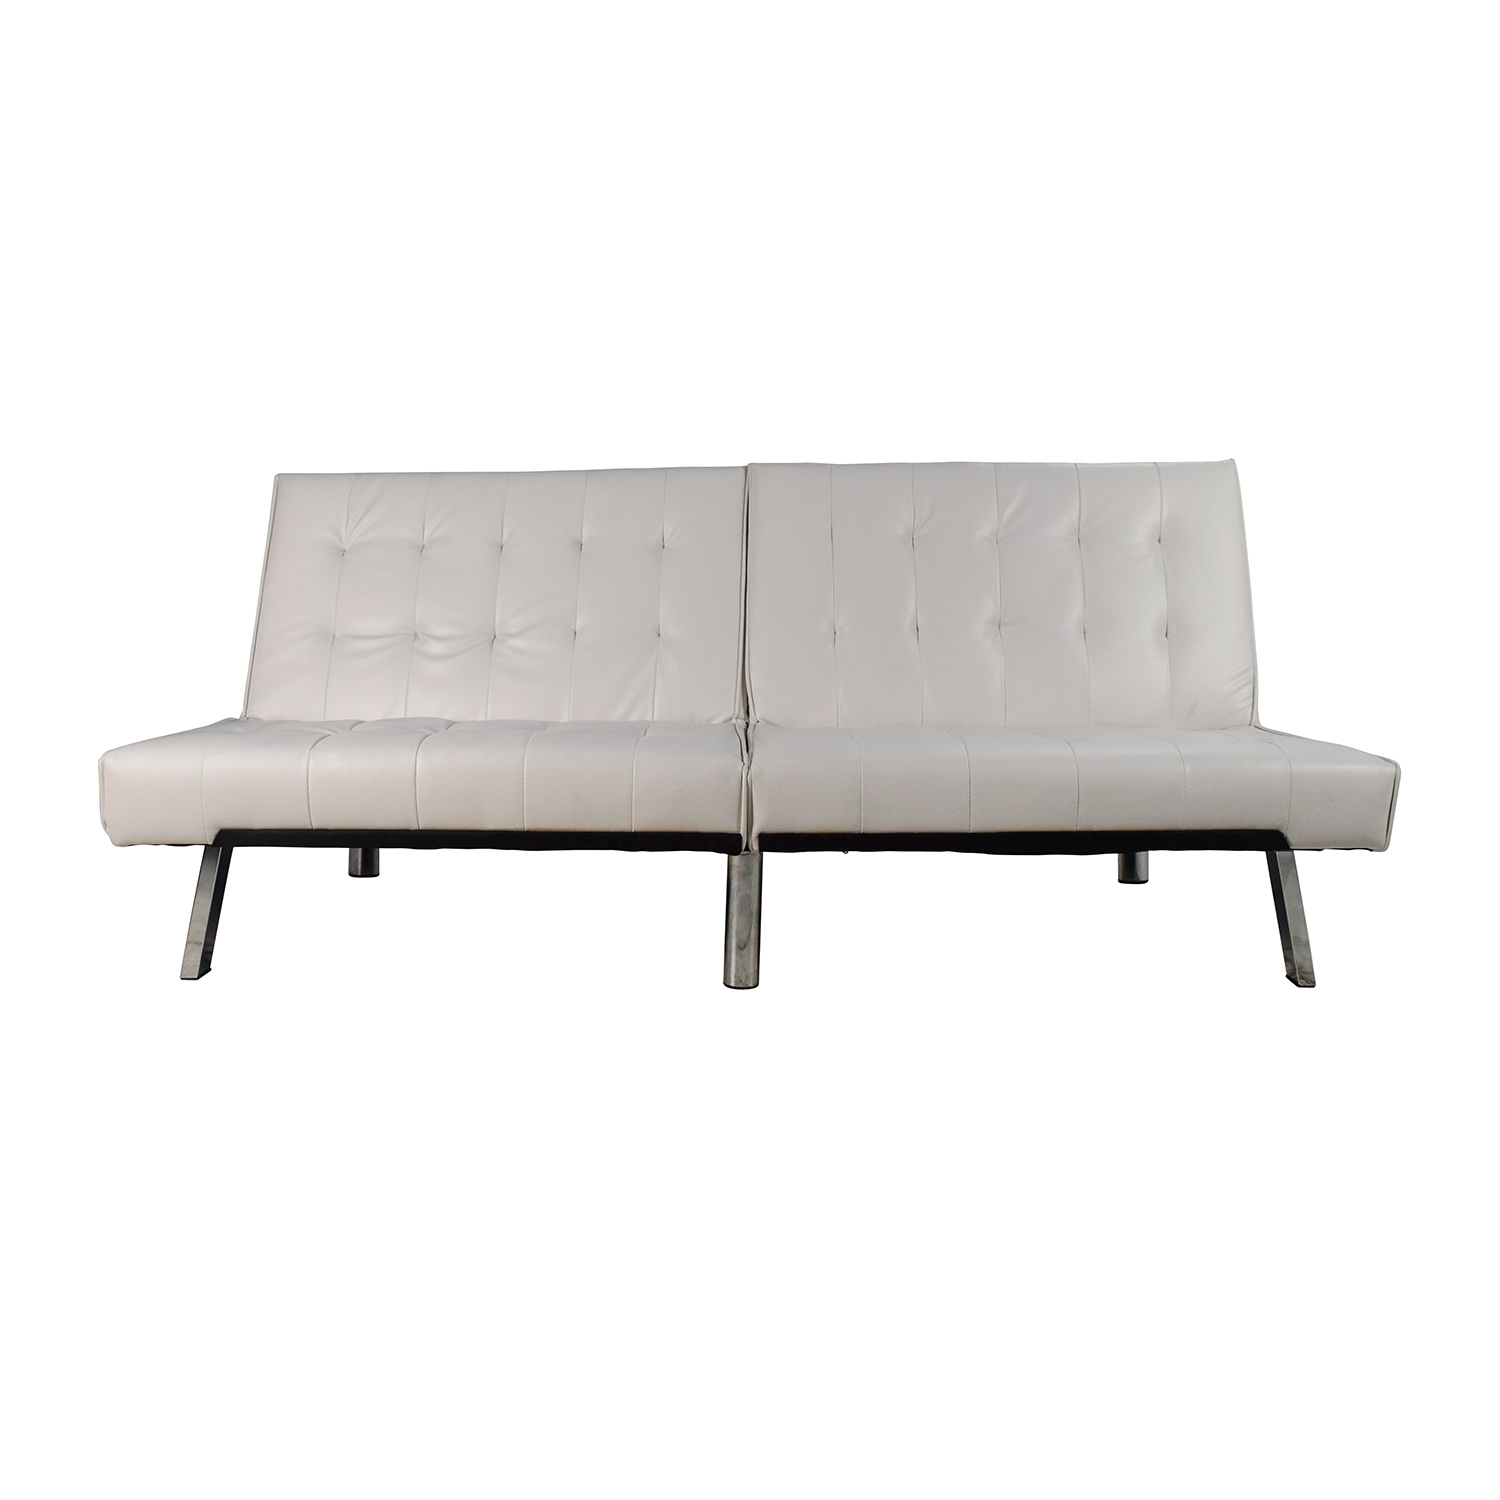 DHP DHP Emily Convertible Faux Leather Futon Sofas